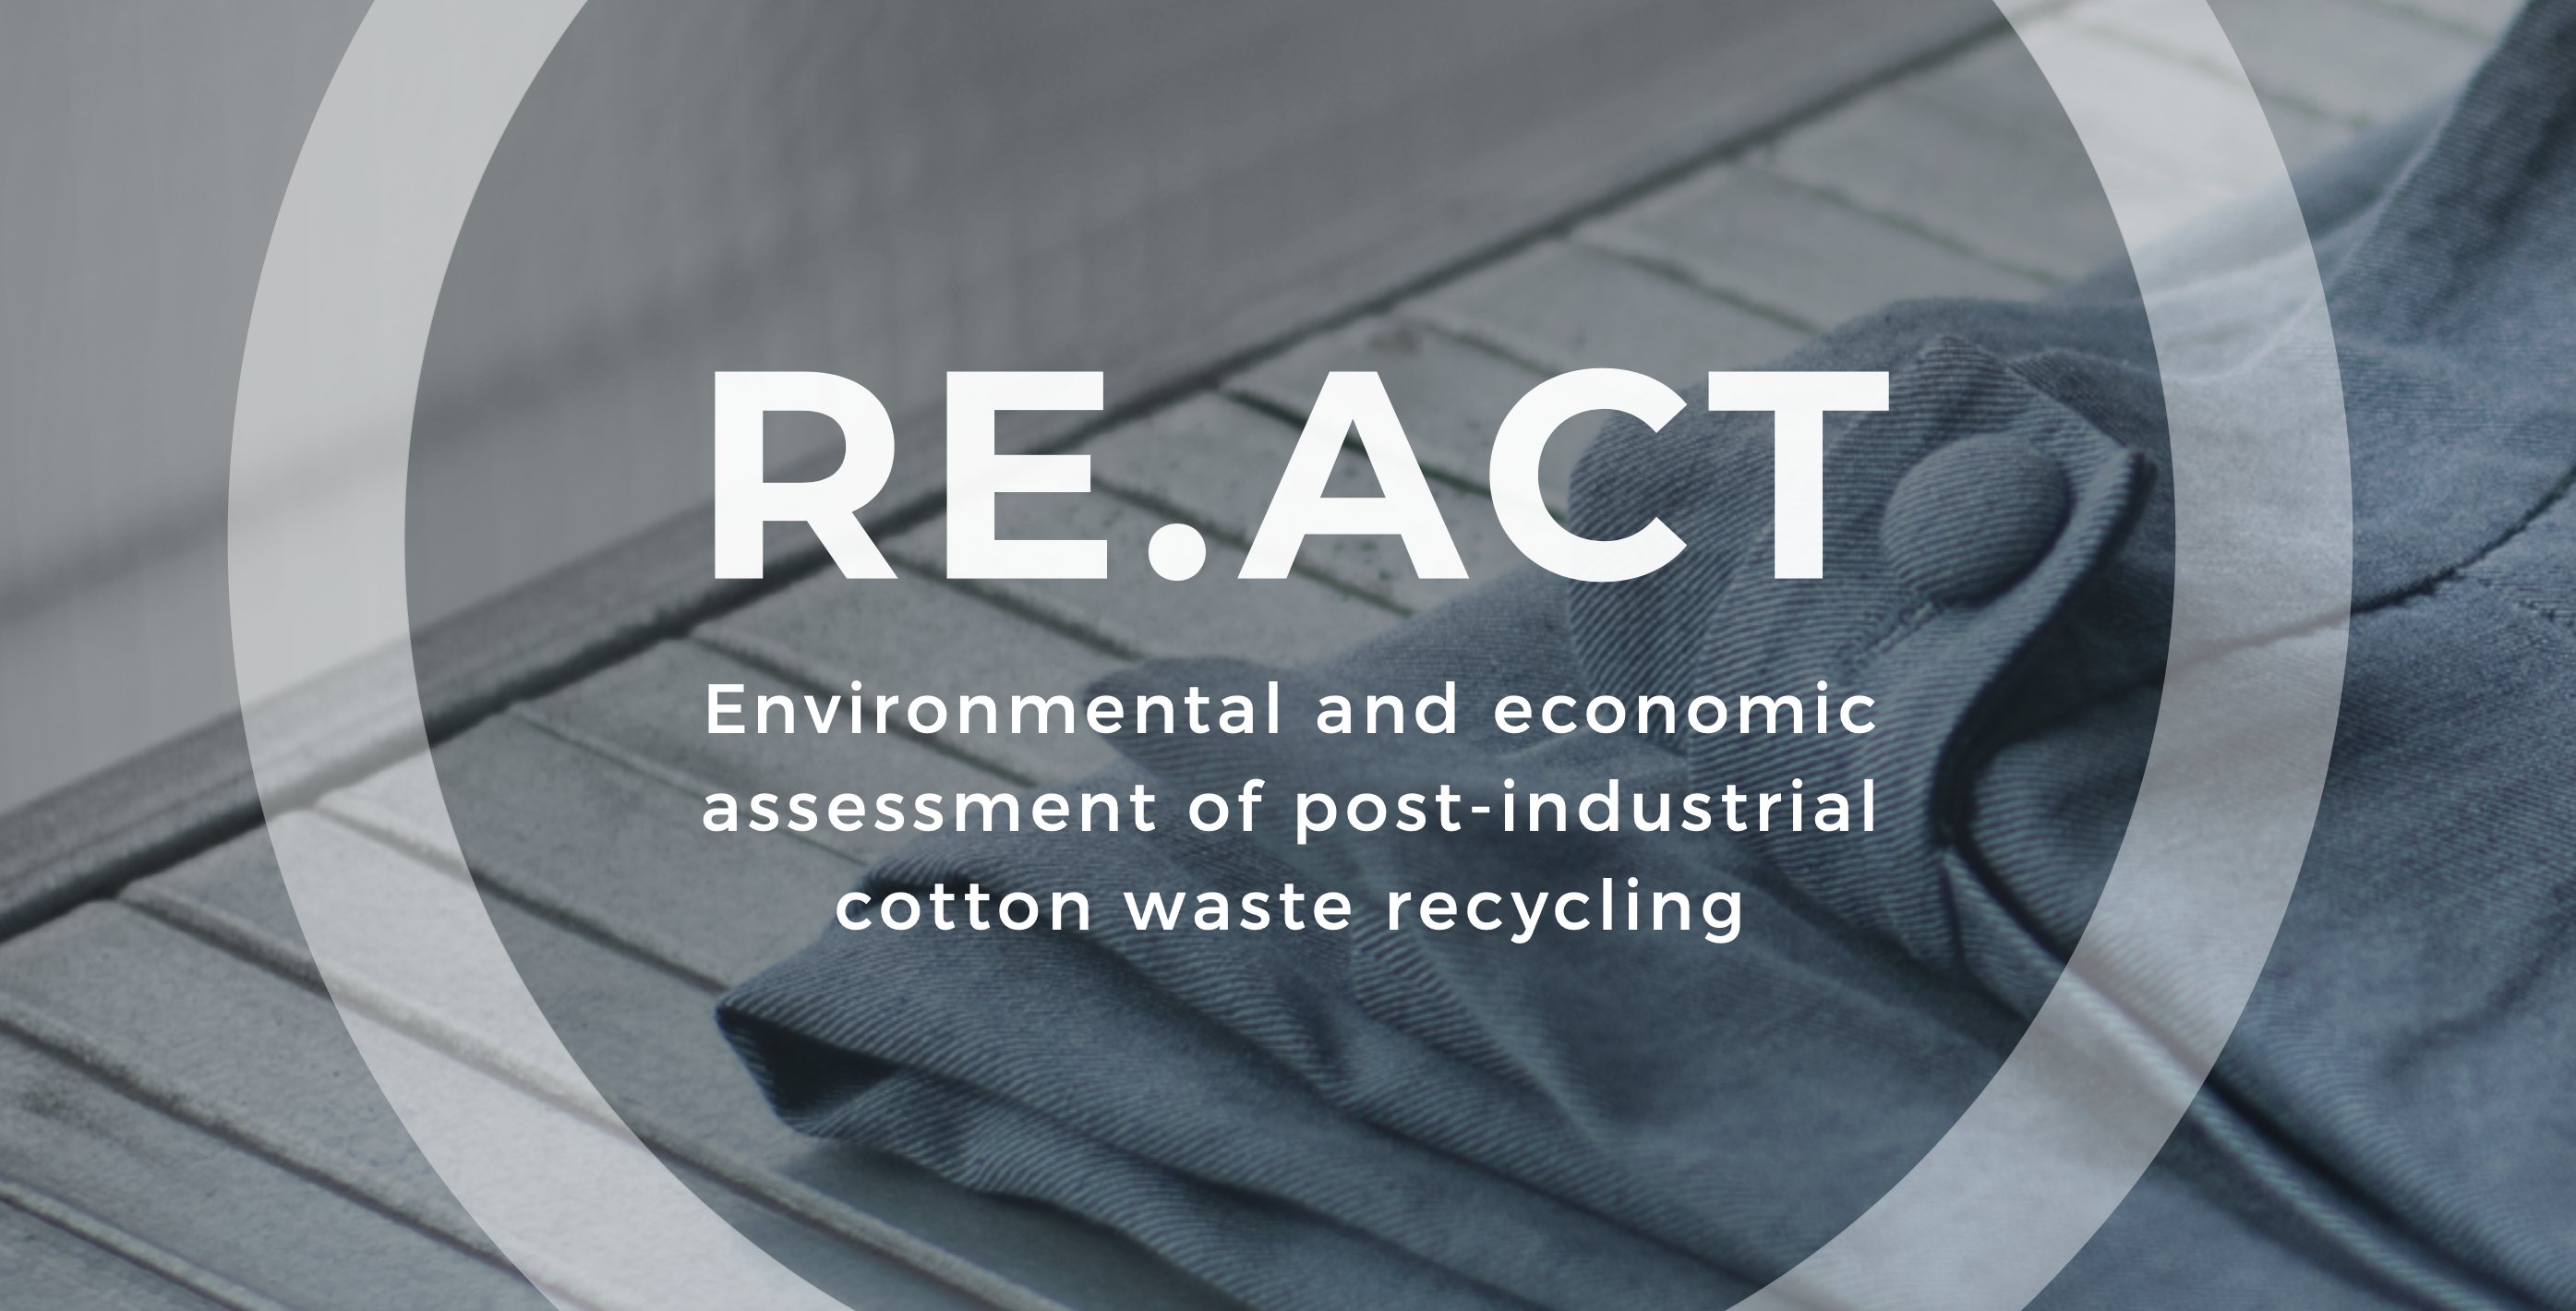 RE.ACT: Denim Recycling Pilot Shows New Opportunities For The Egyptian Textile Sector